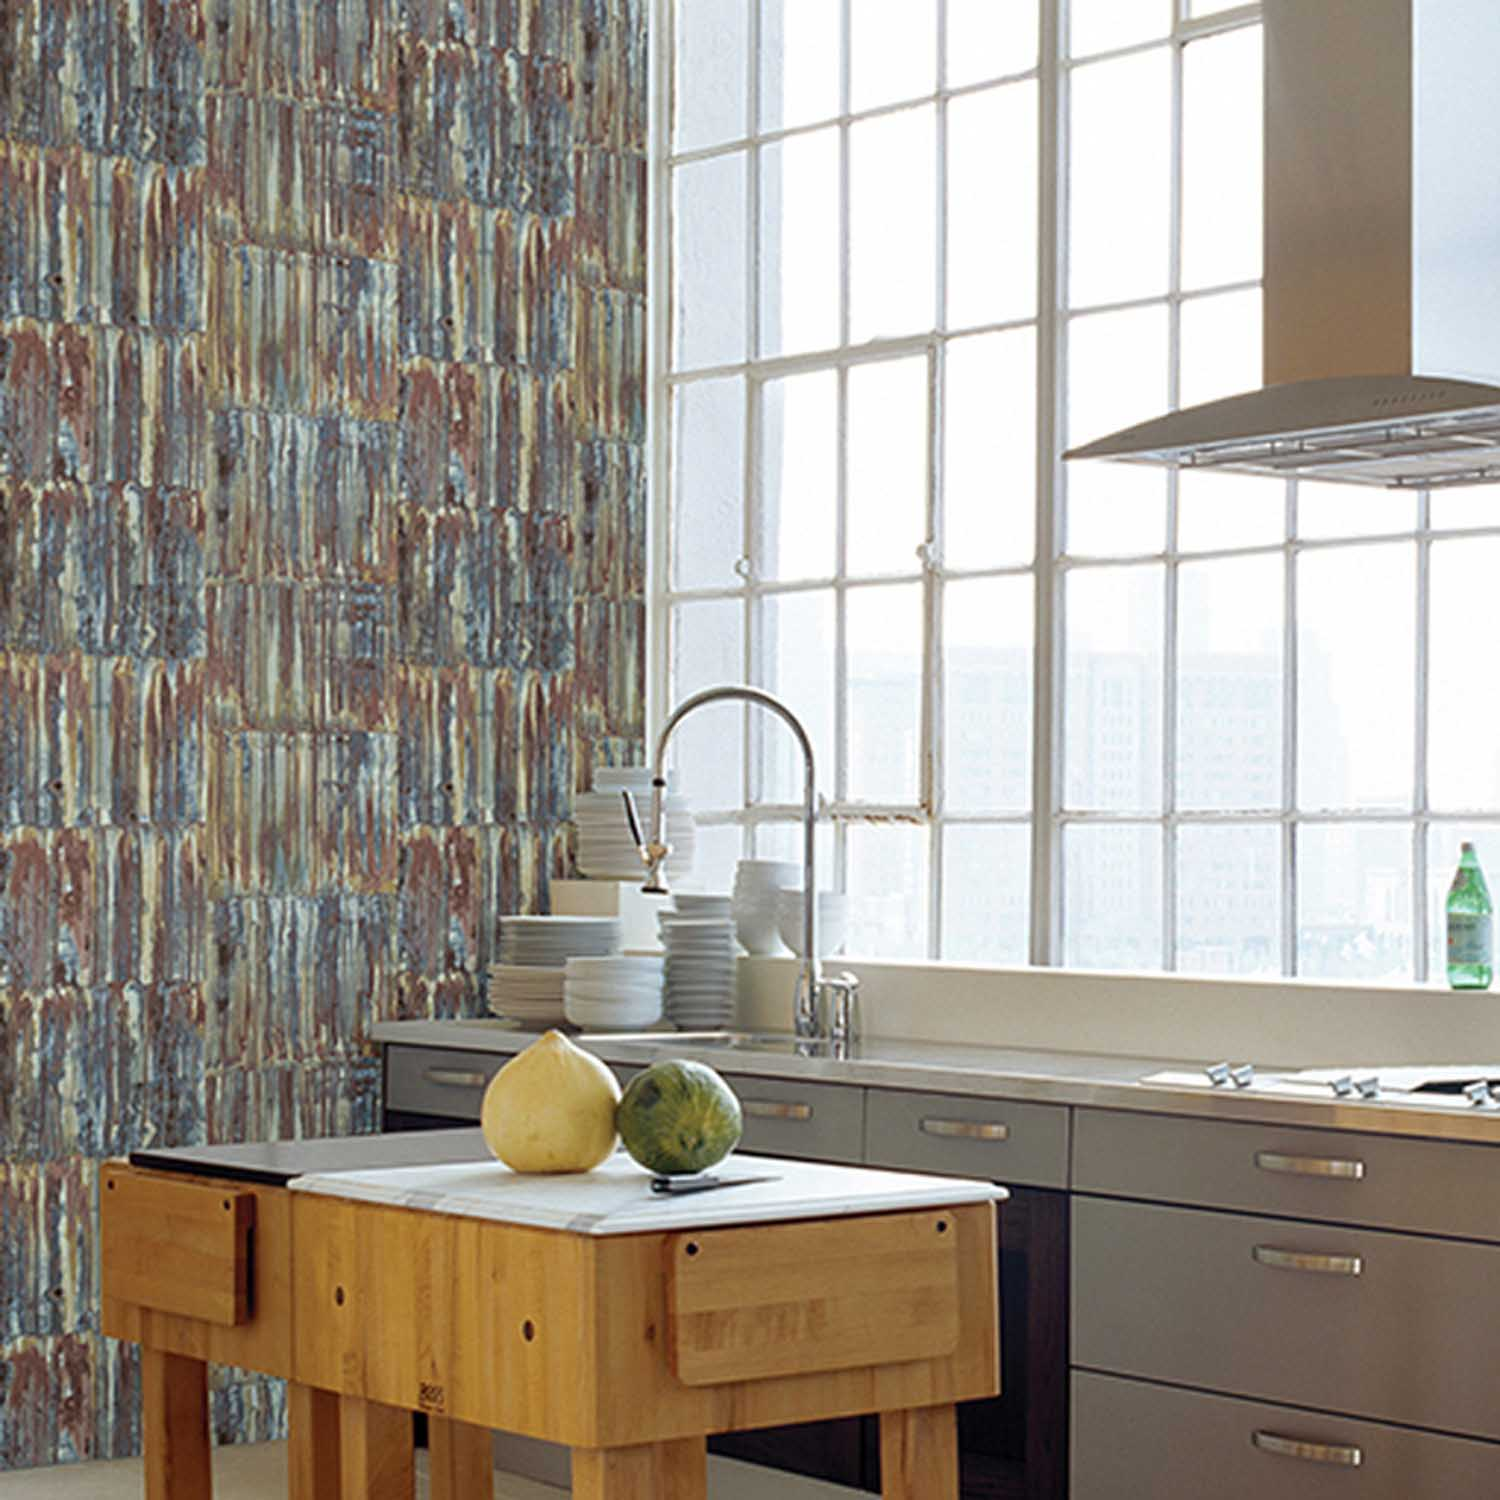 Rusted Metallic Corrugated Panel Effect Wallpaper | Brown and ...